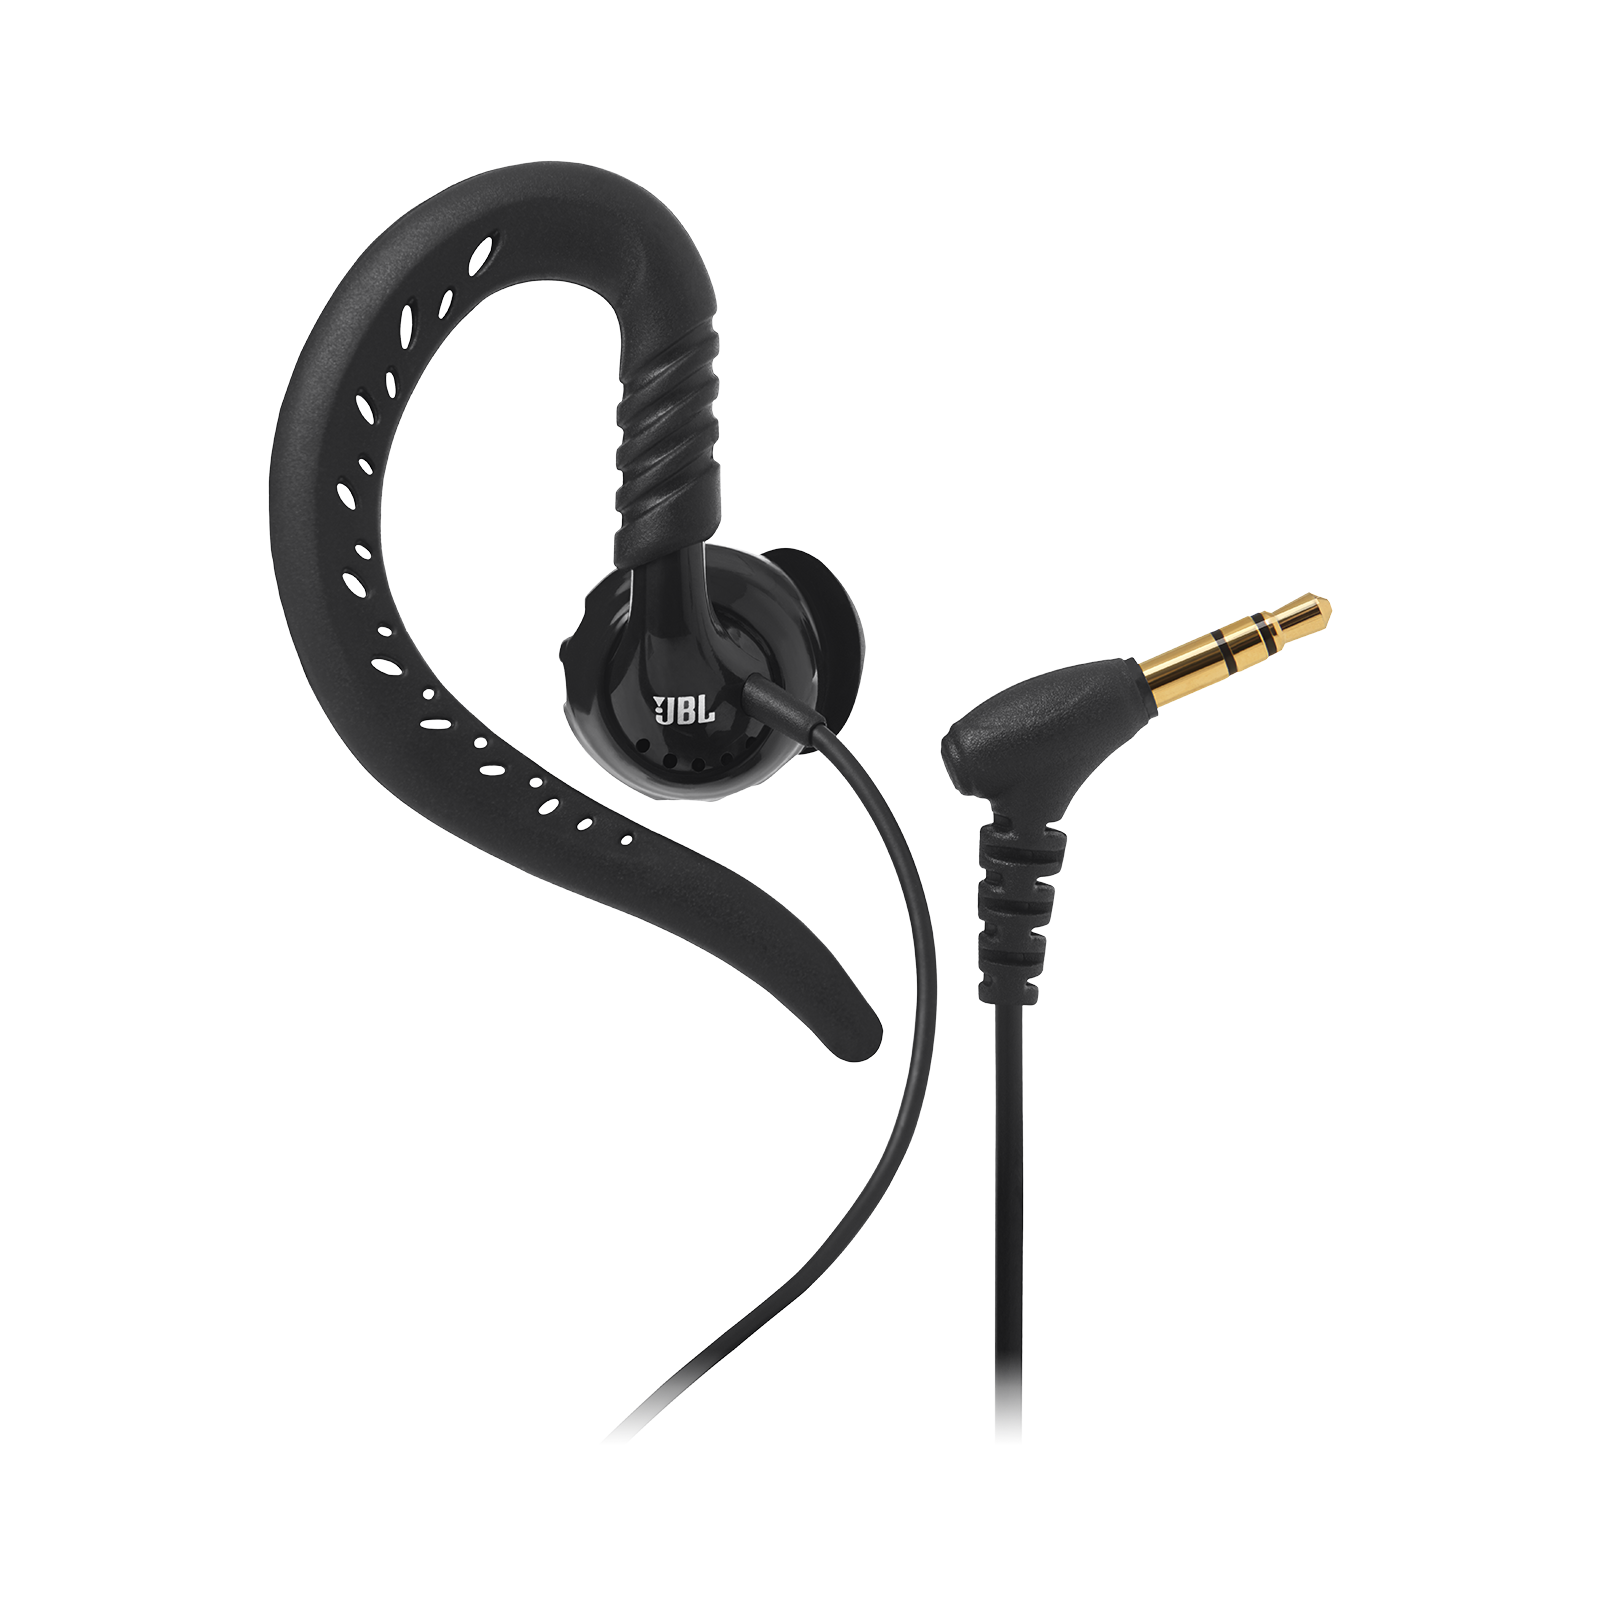 JBL Focus 100 - Black - Behind-the-ear, sport headphones with Twistlock™ Technology - Detailshot 1